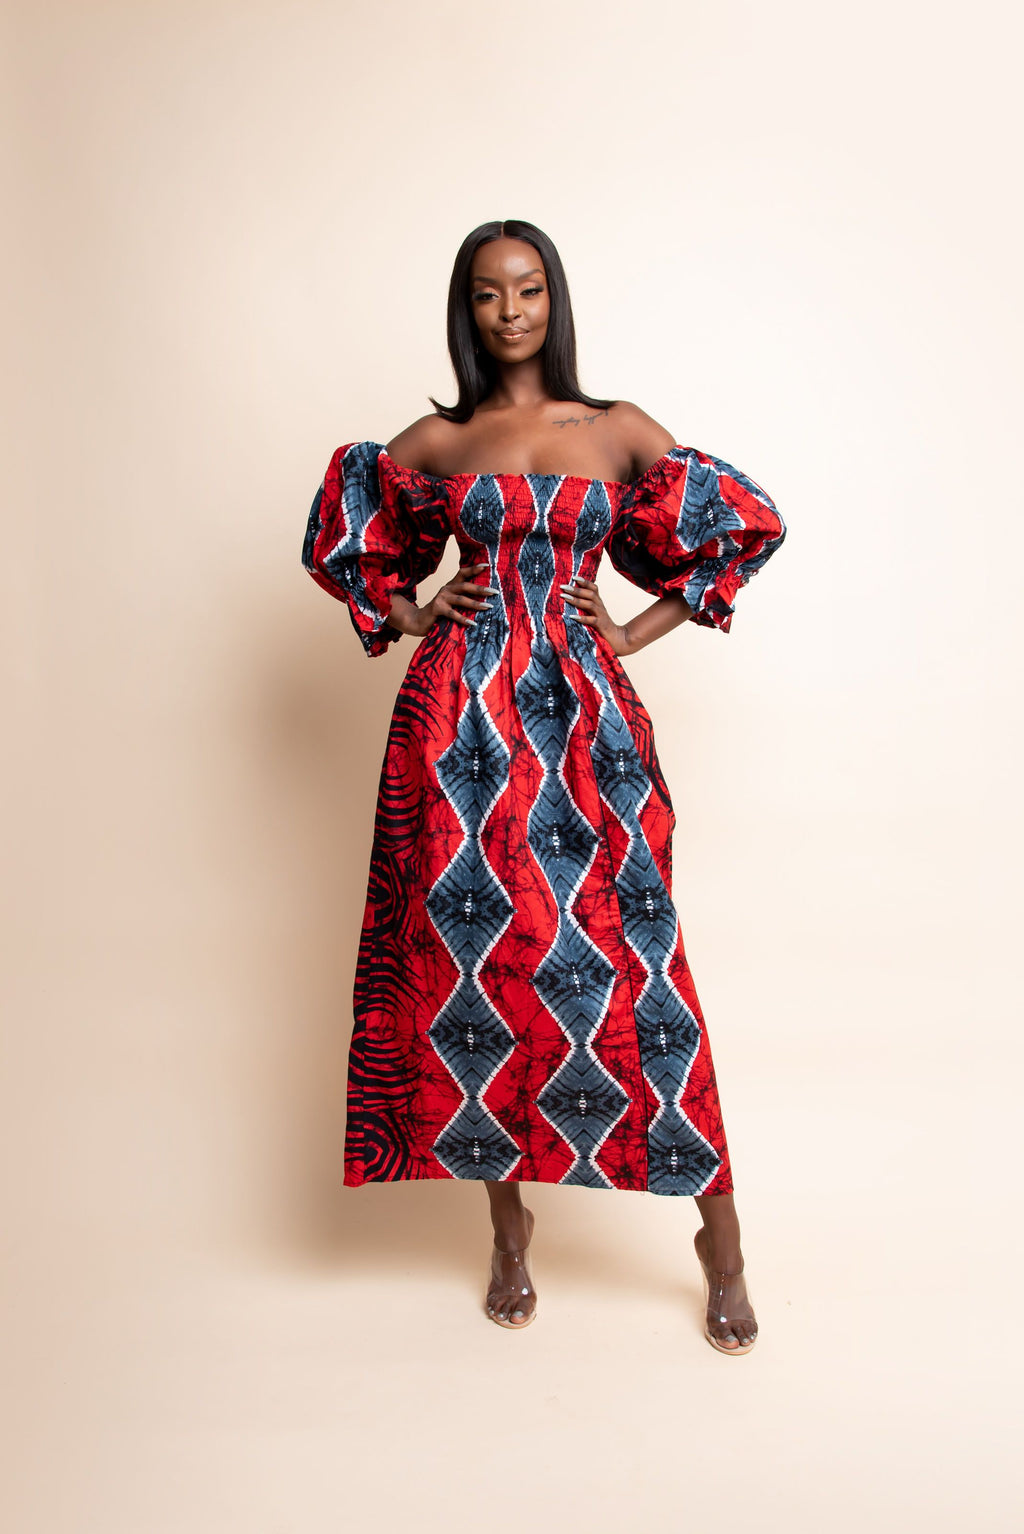 KUNLE African print off smocked maxi dress (PUFFY SLEEVE)